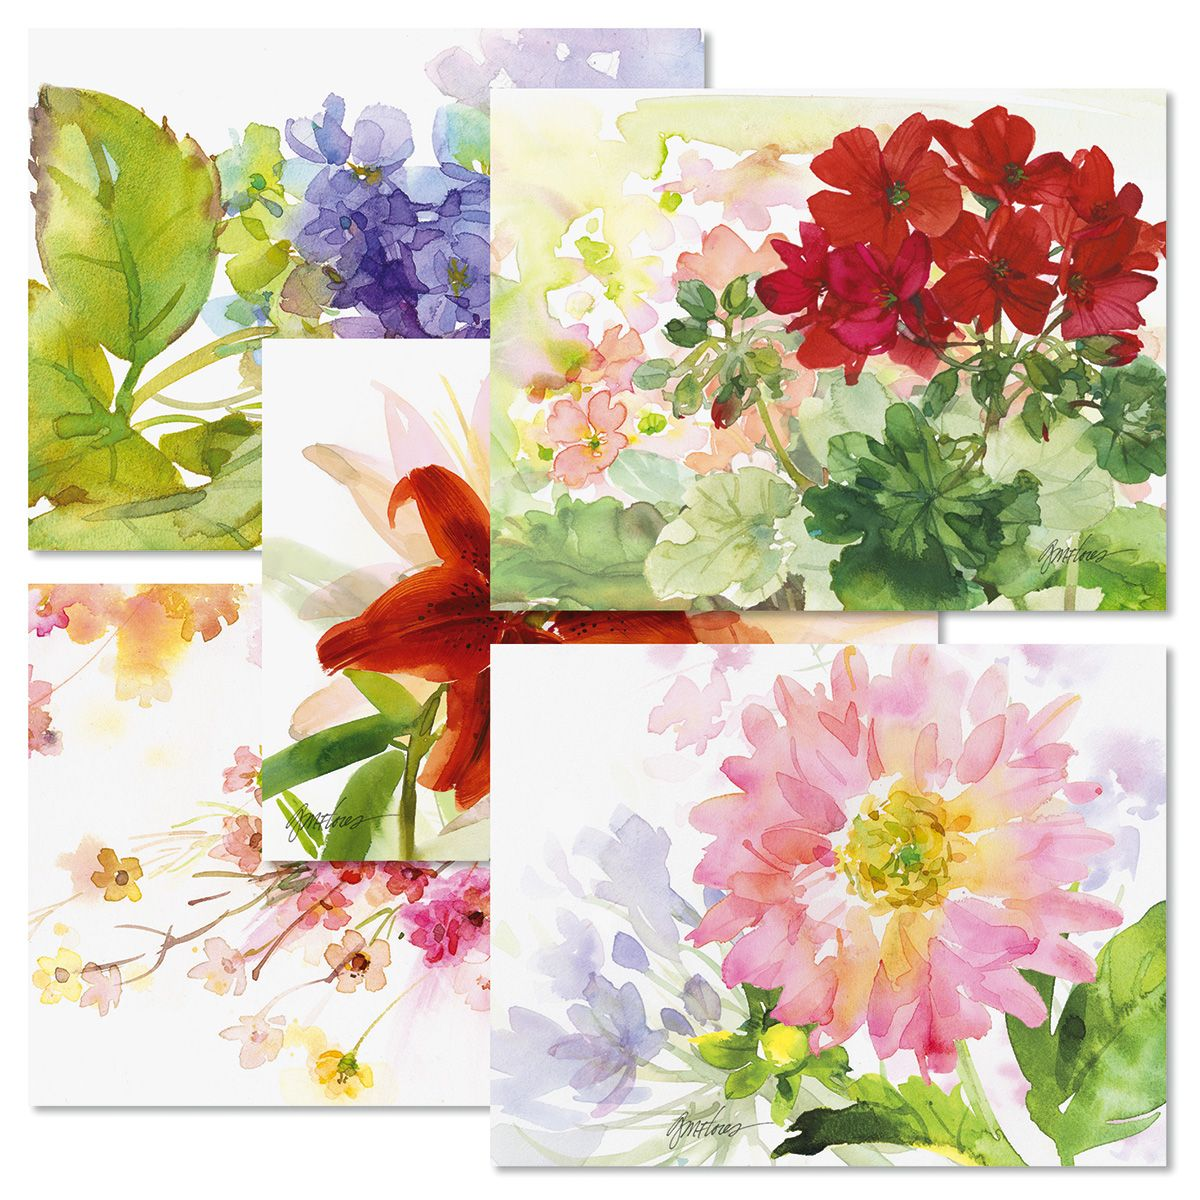 Watercolor Garden Note Card Value Pack - Buy 1 Get 1 Free